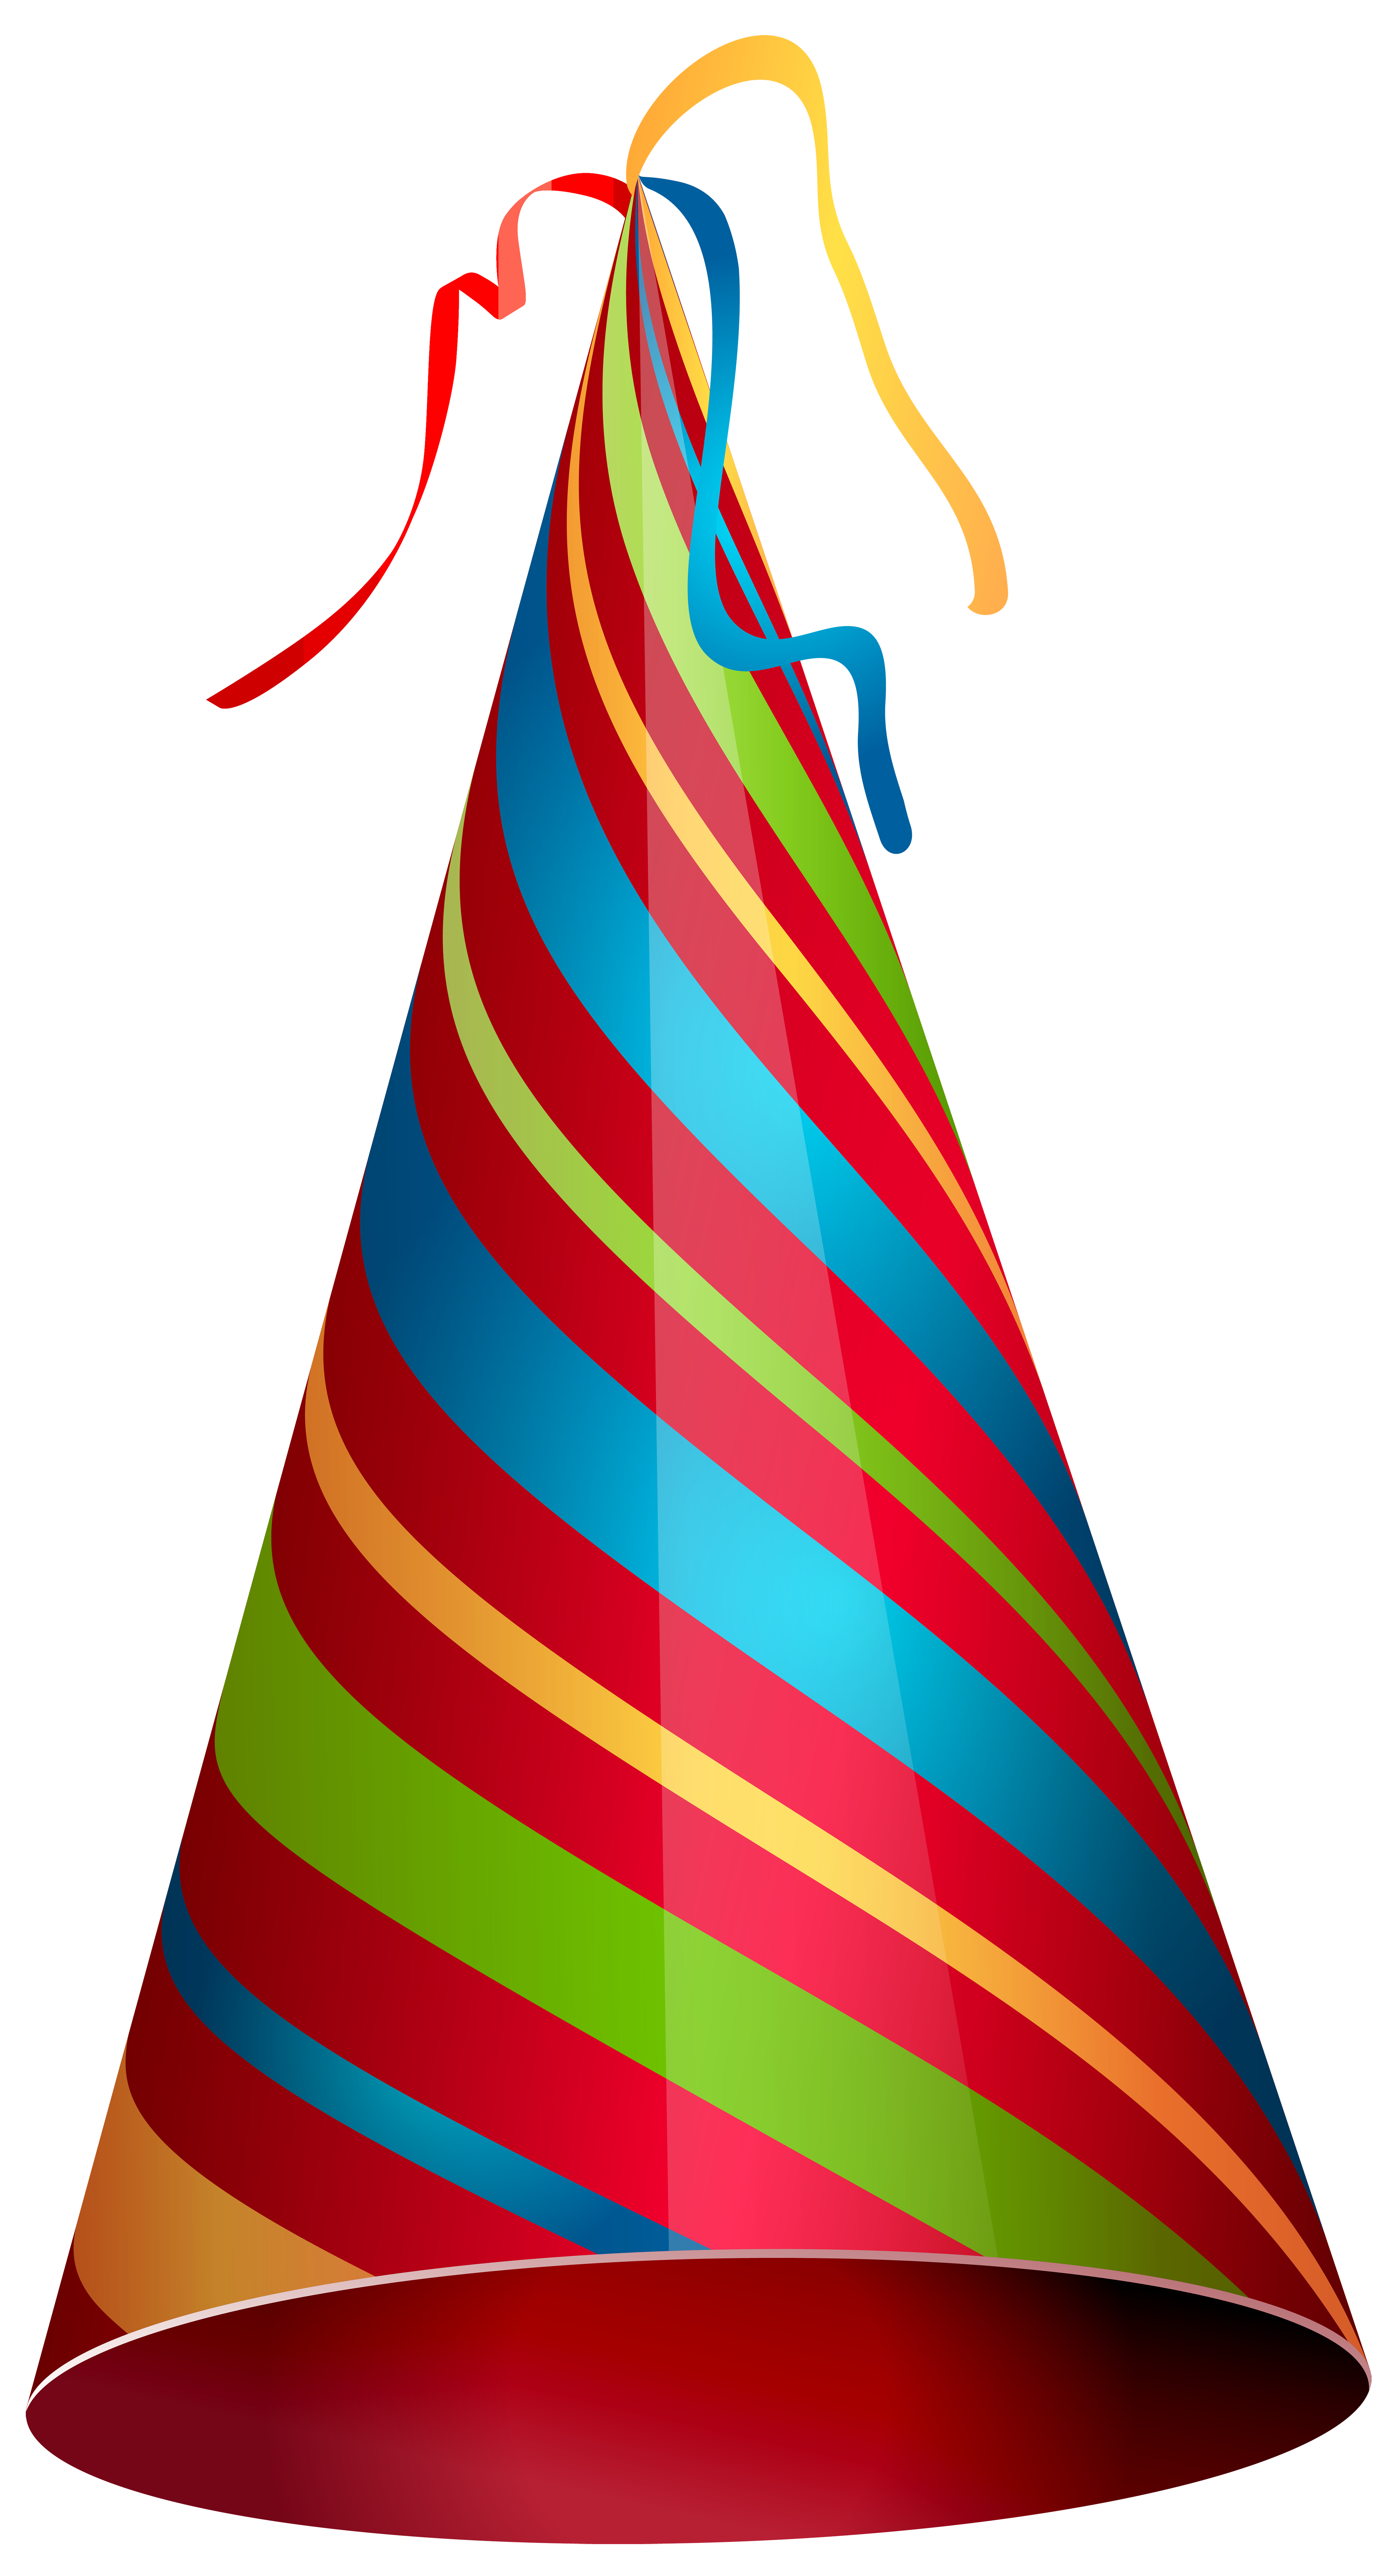 Transparentparty hats clipart graphic stock Colorful Party Hat Transparent PNG Clip Art Image | Gallery ... graphic stock